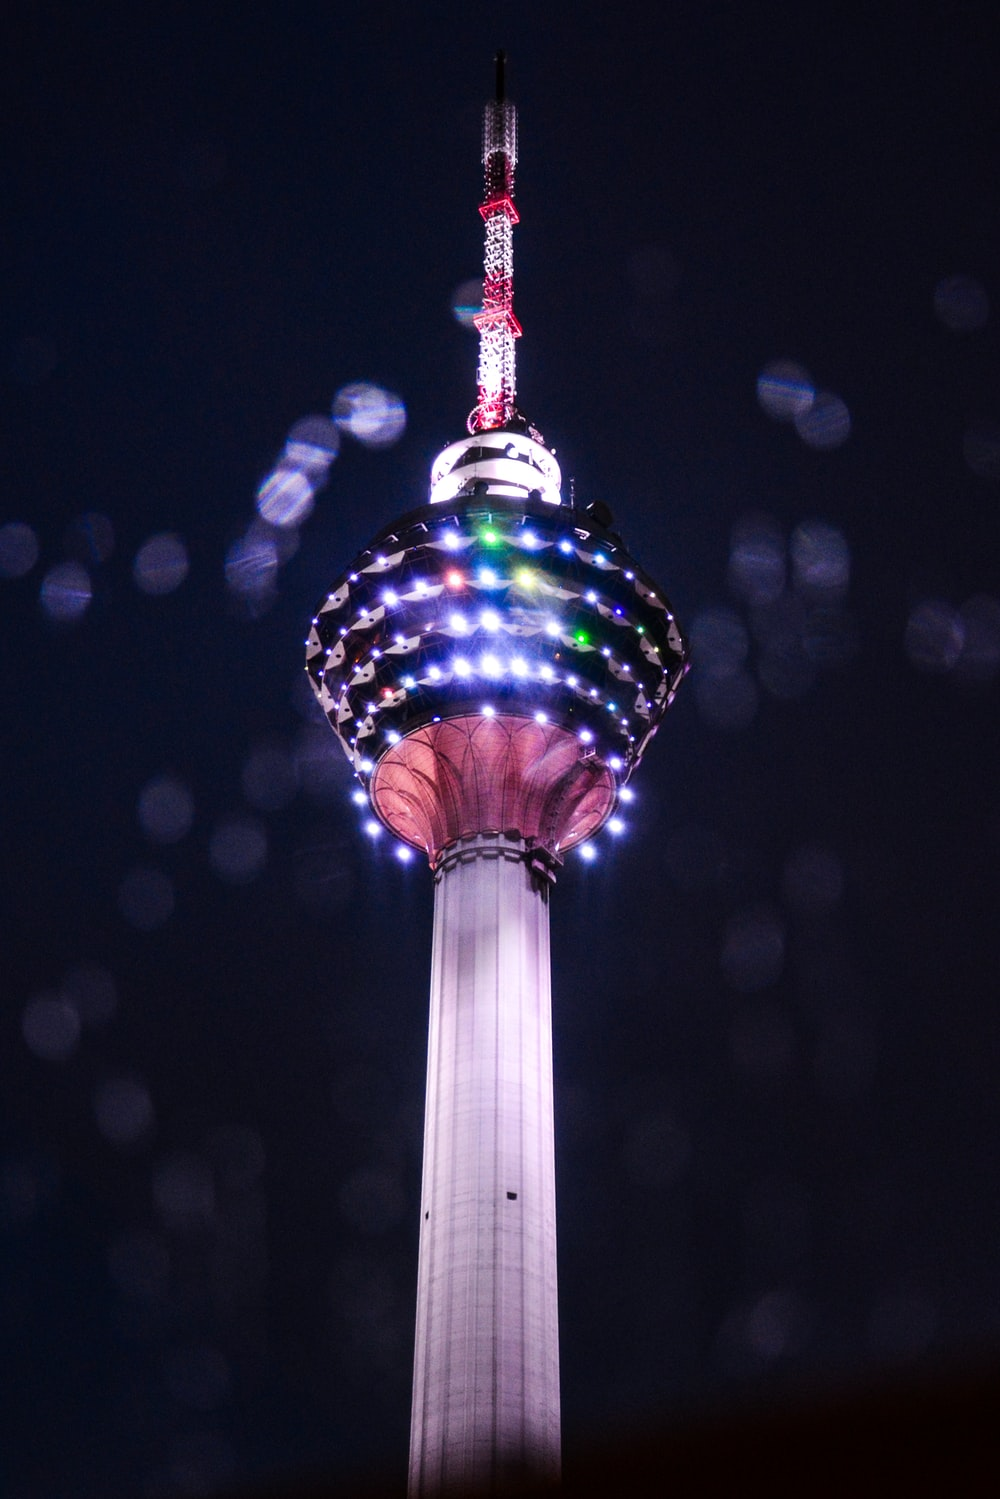 needle tower at night time